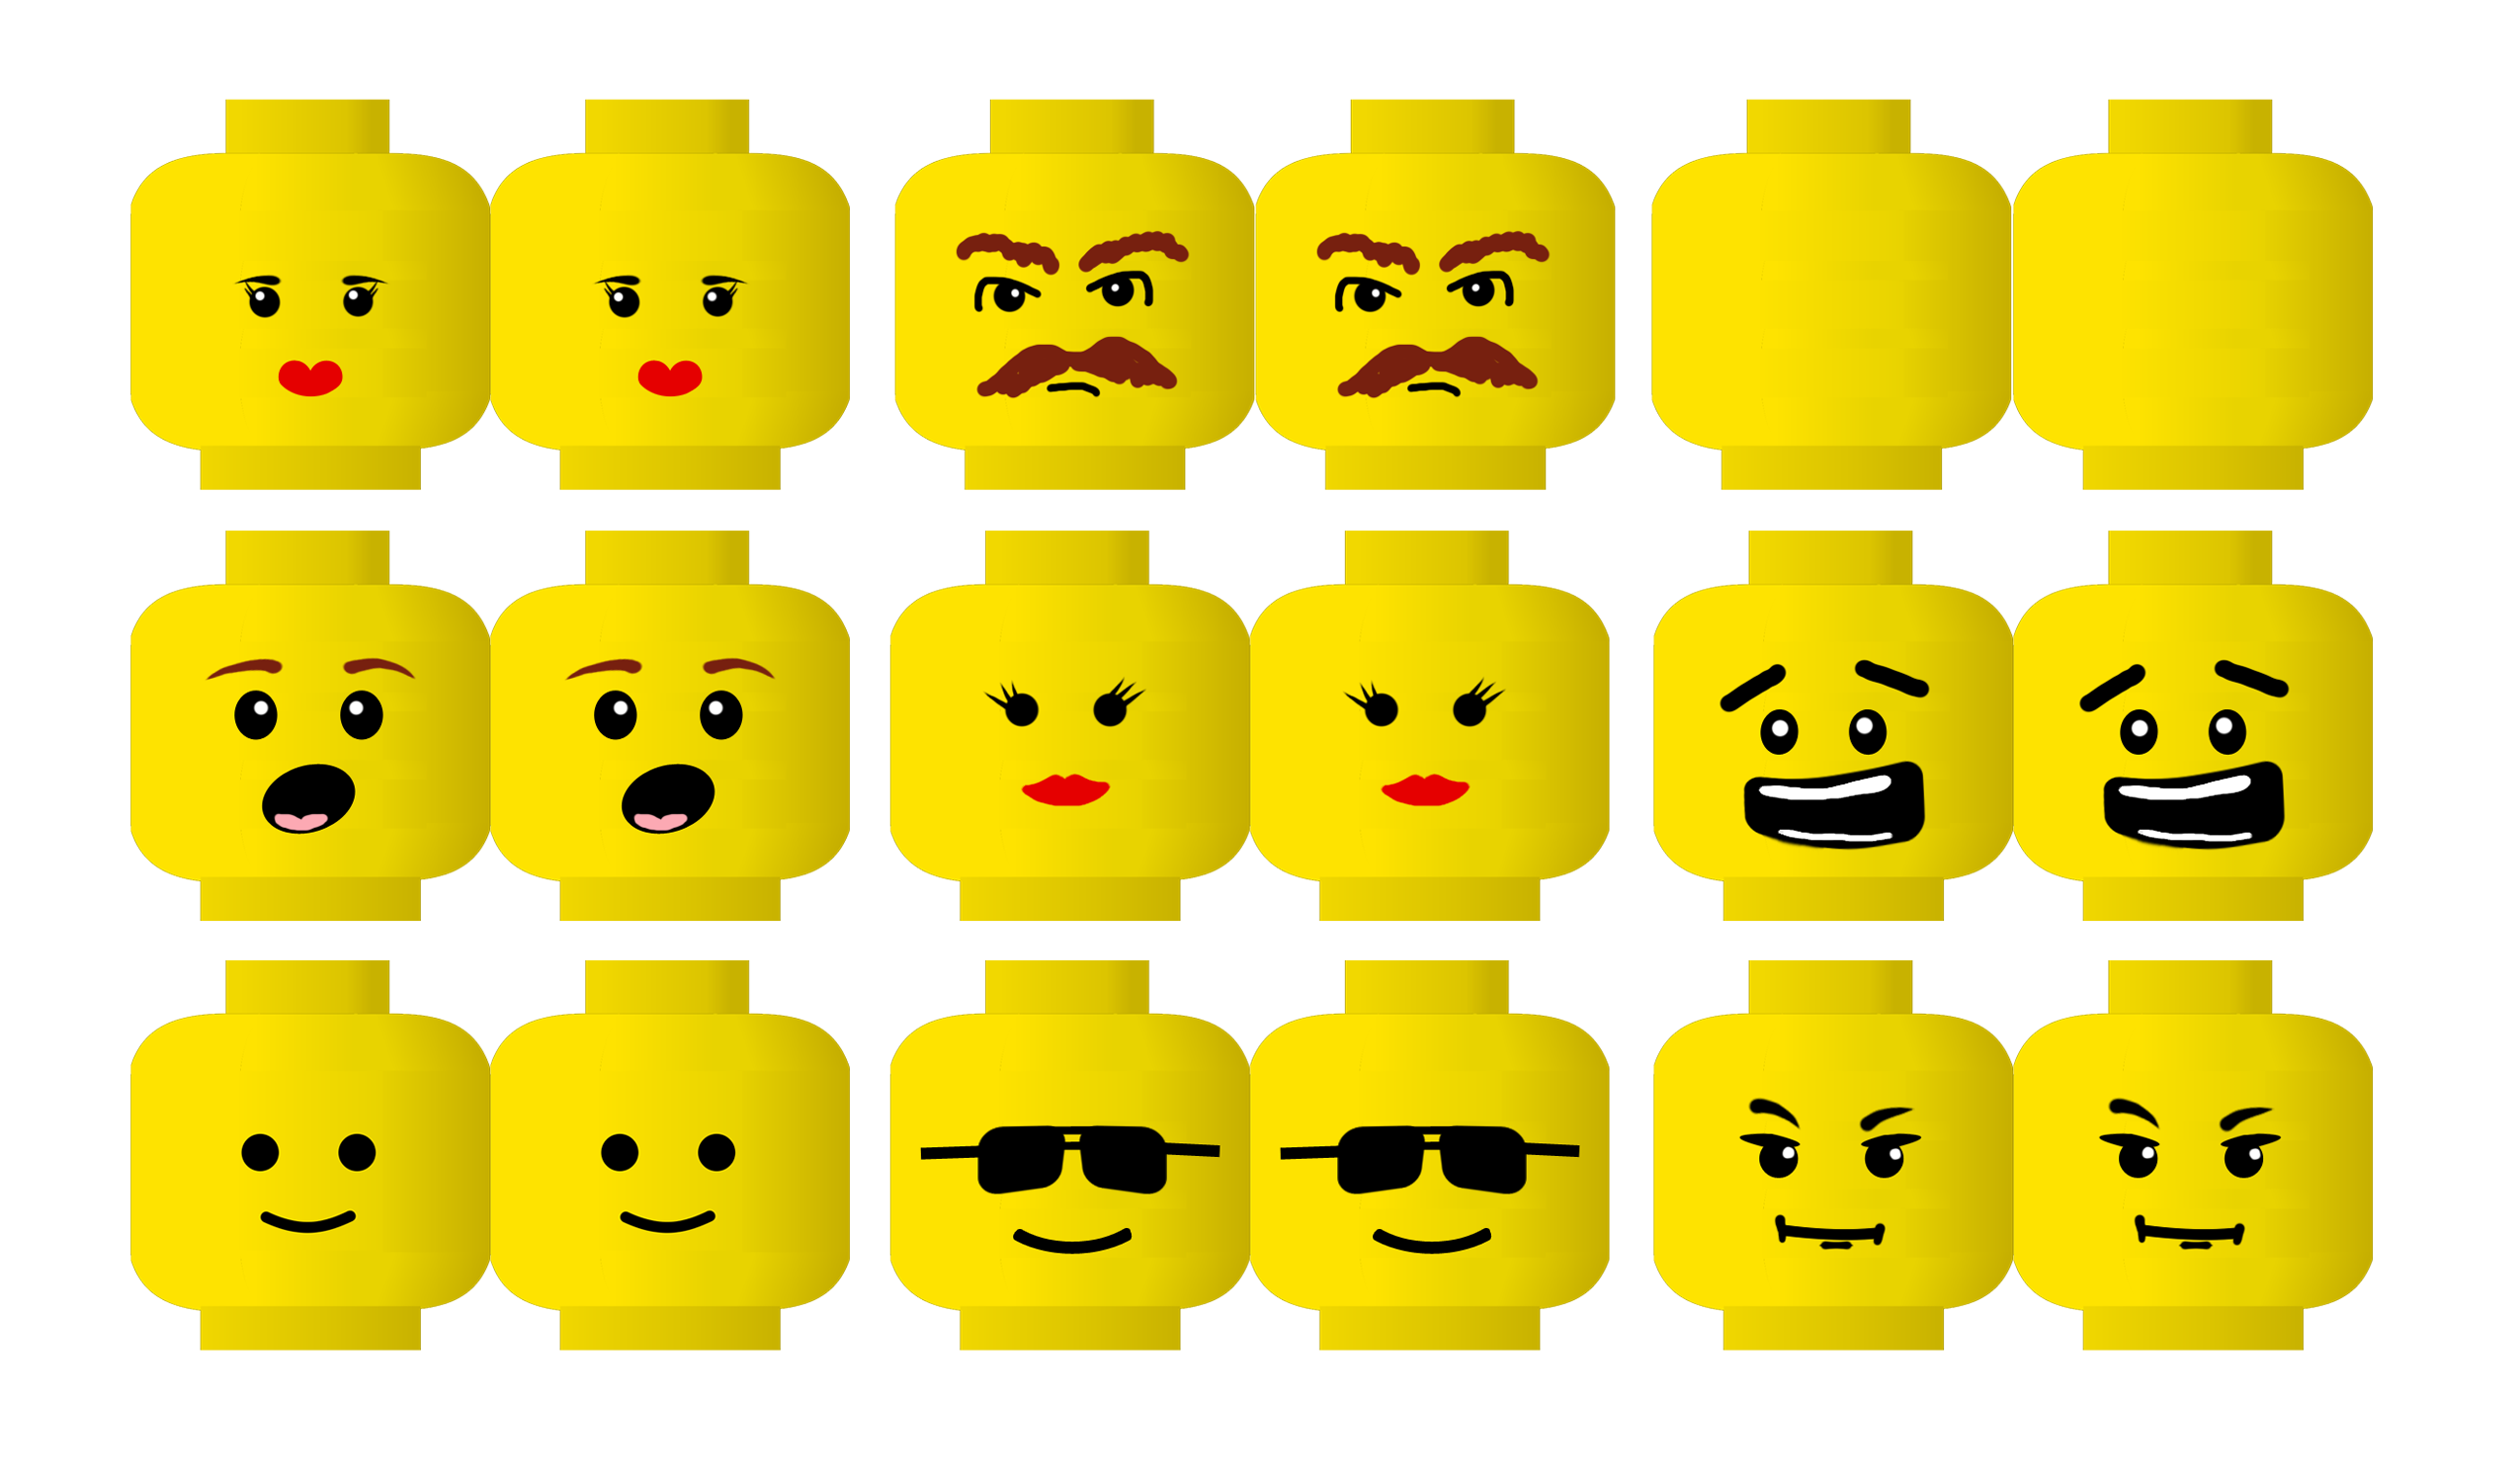 7 Best Images of LEGO Head Printable - LEGO Face Template ...